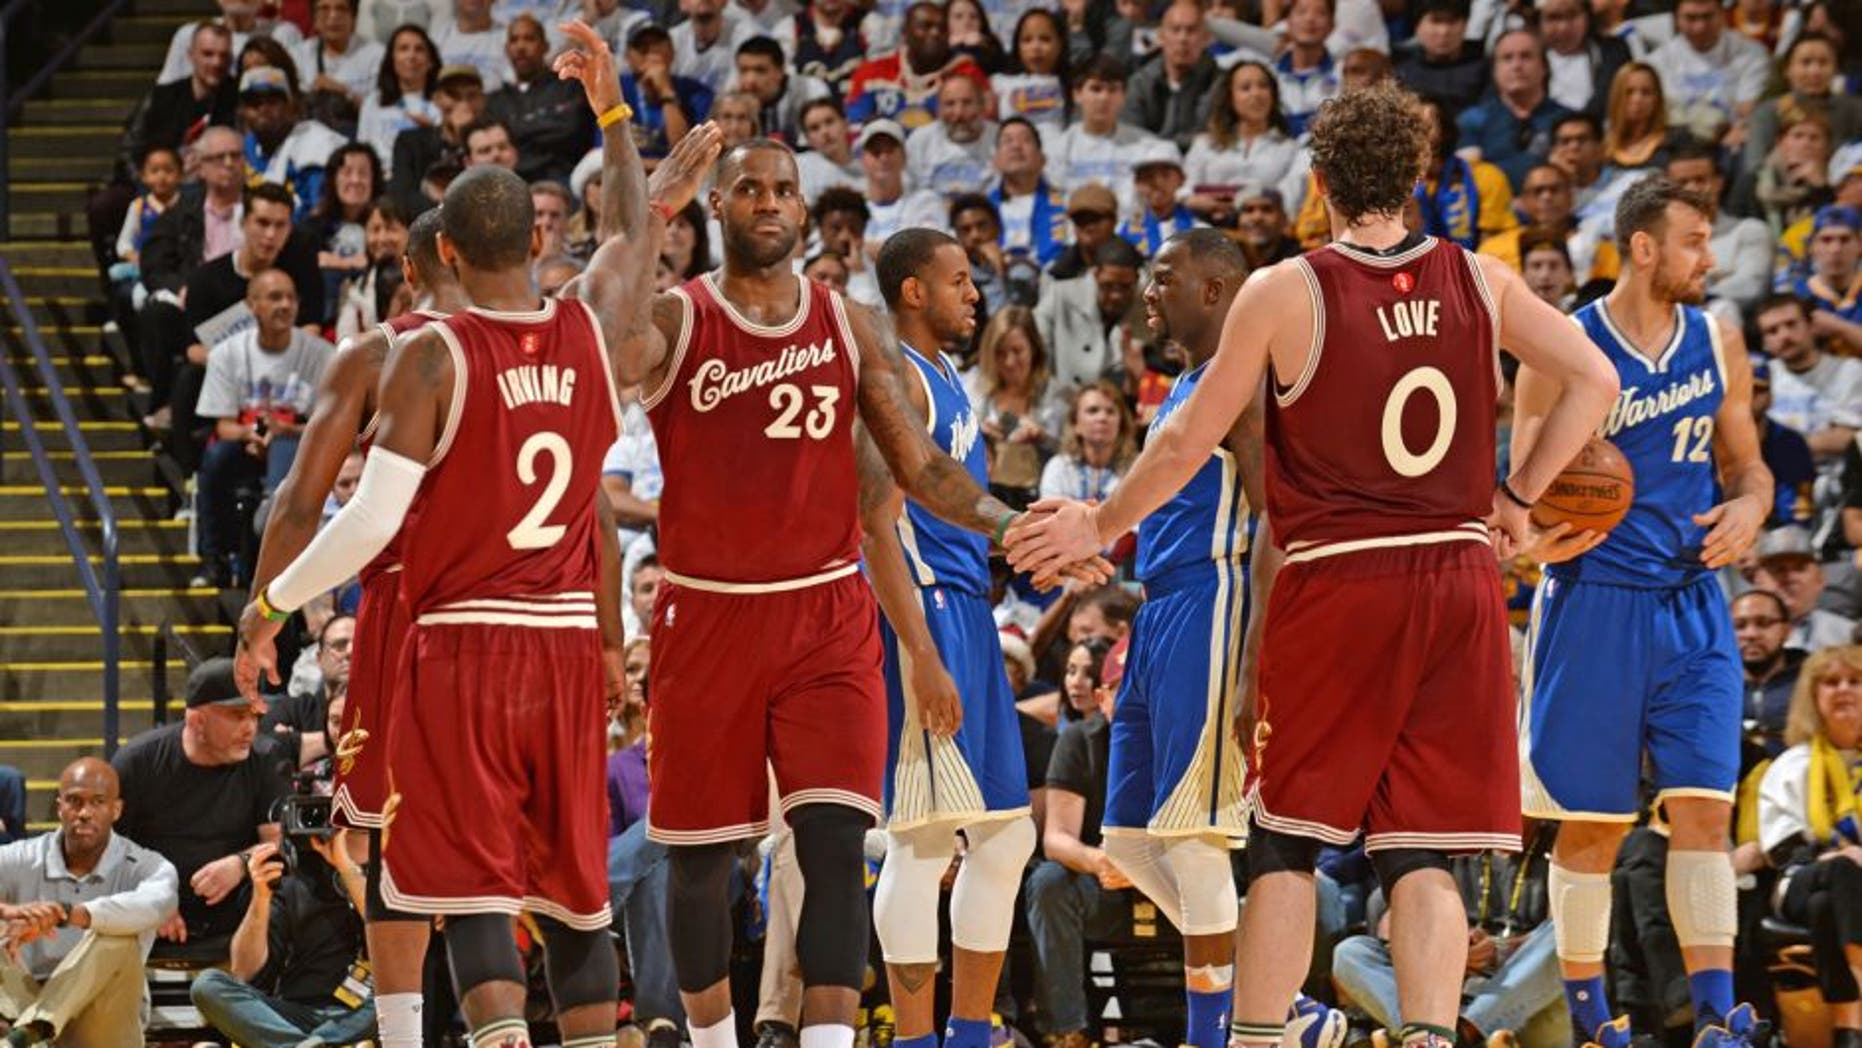 OAKLAND, CA - DECEMBER 25: LeBron James #23 and Kevin Love #0 and Kyrie Irving #2 of the Cleveland Cavaliers shake hands on against the Golden State Warriors on December 25, 2015 at ORACLE Arena in Oakland,California.NOTE TO USER: User expressly acknowledges and agrees that, by downloading and or using this Photograph, user is consenting to the terms and conditions of the Getty Images License Agreement. Mandatory Copyright Notice: Copyright 2015 NBAE (Photo by Noah Graham/NBAE via Getty Images)